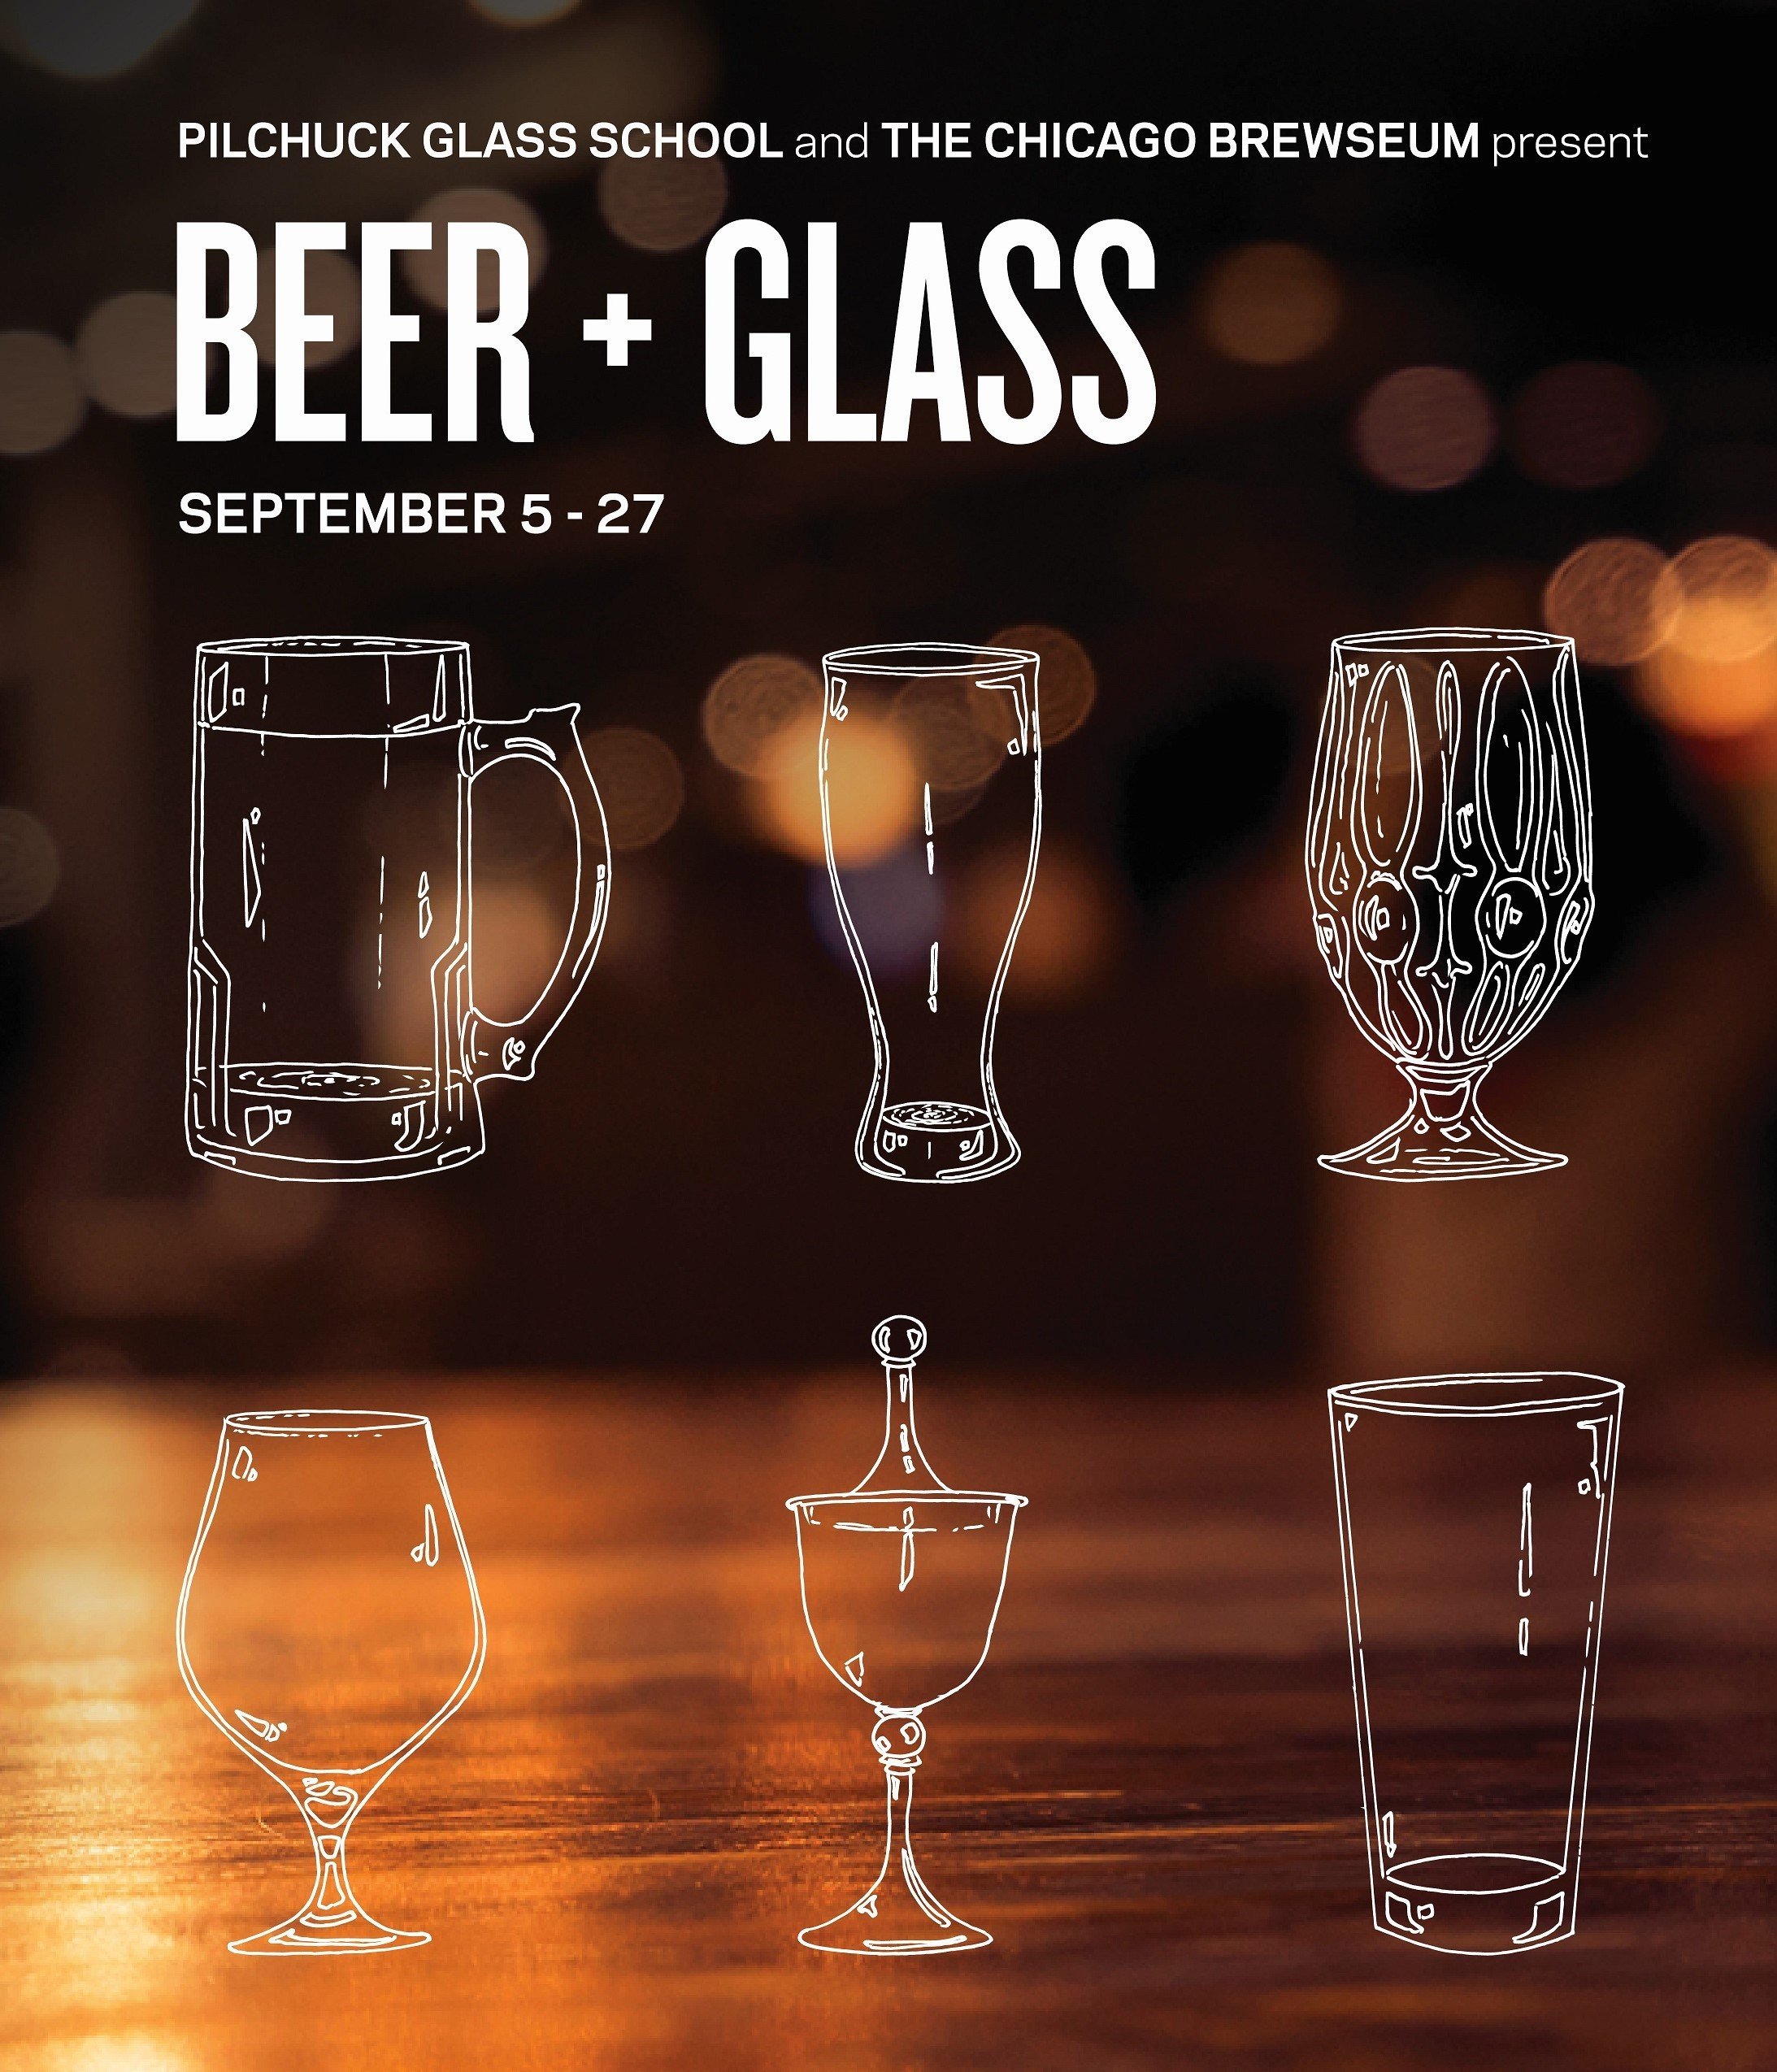 Beer + Glass at Pilchuck Glass School Campus in Stanwood, WA